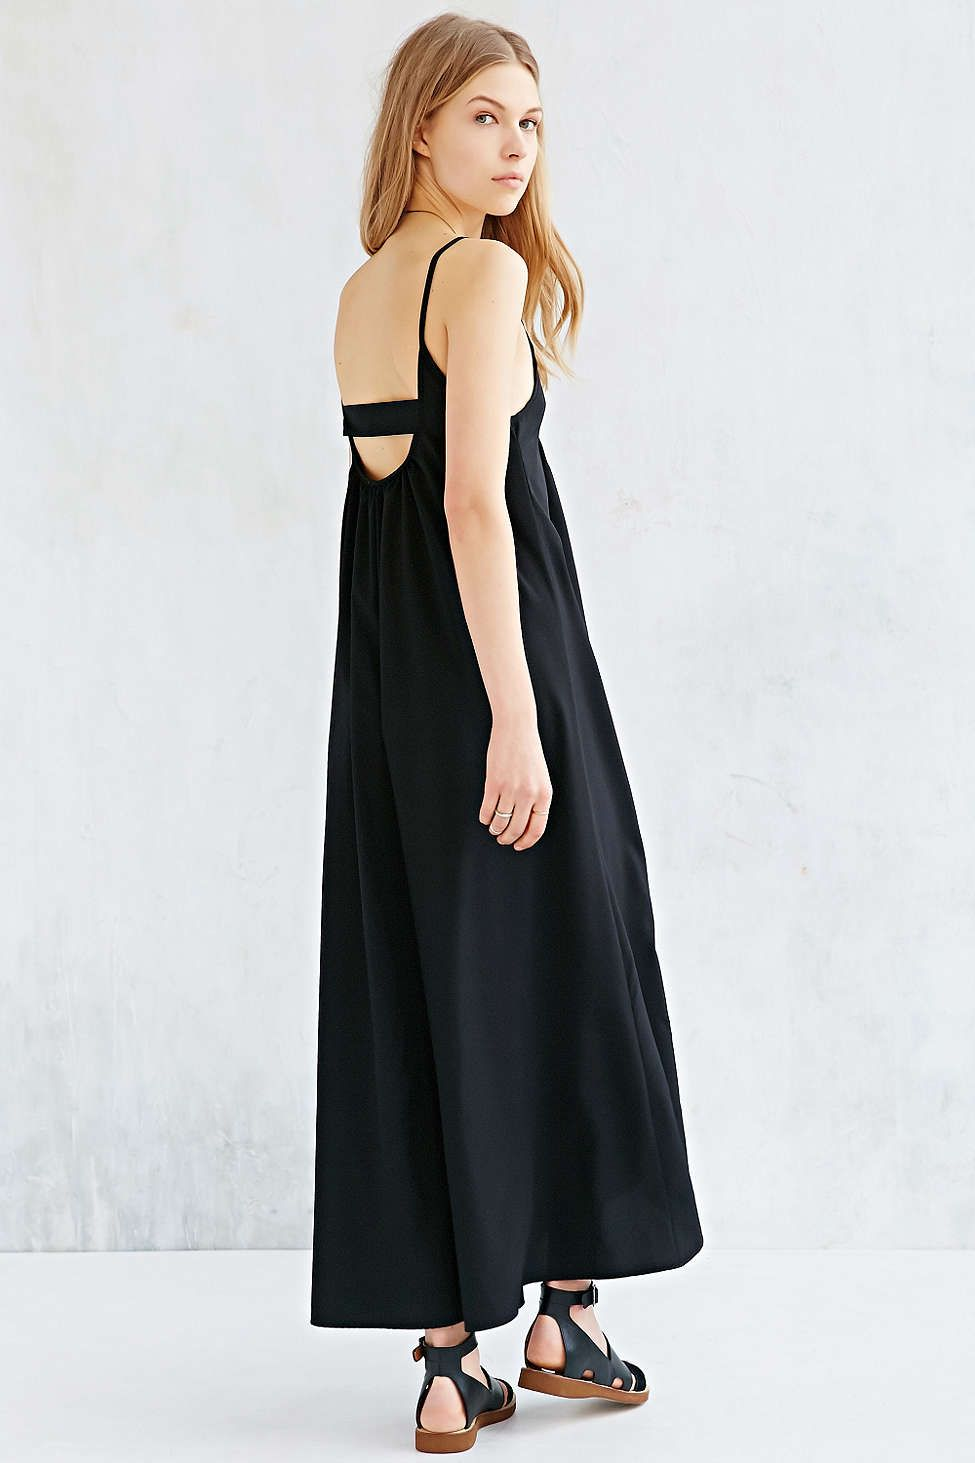 ab1dd66f0f9 Silence + Noise Open-Back Maxi Dress - Urban Outfitters